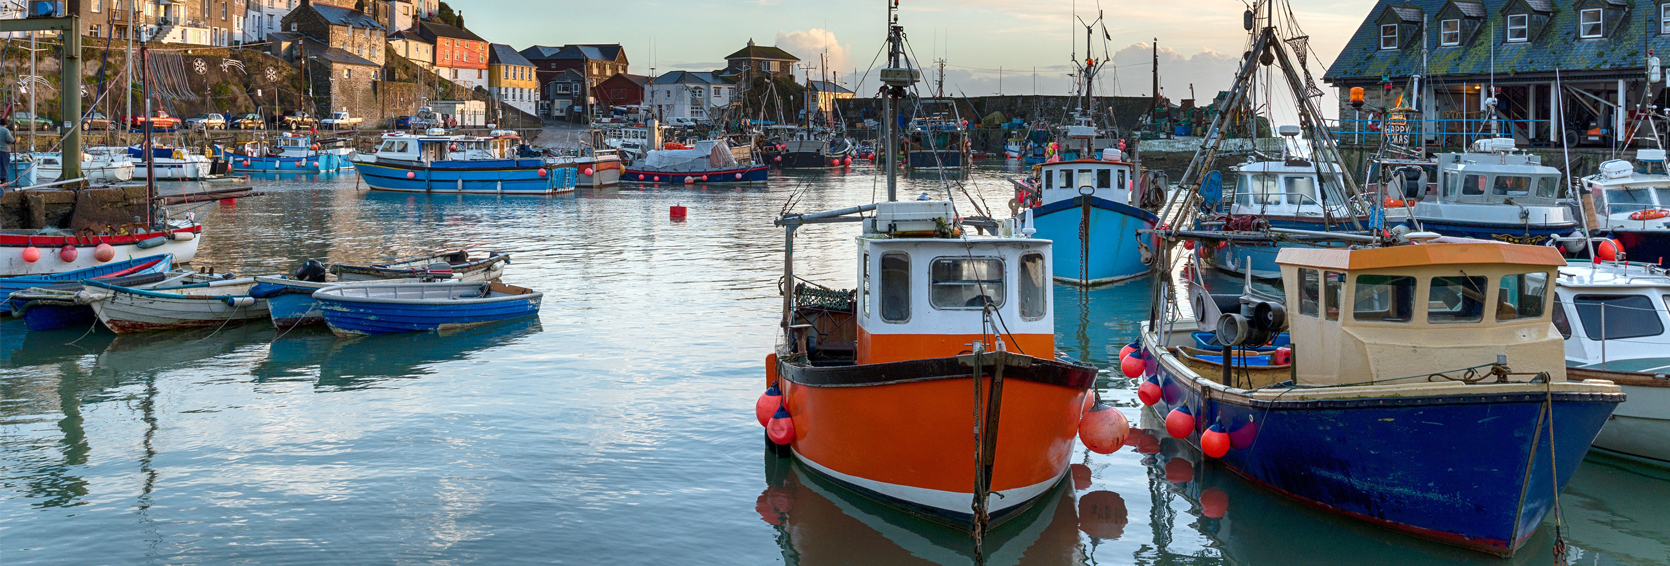 Cornish-Fishing-Boats-in-Harbour